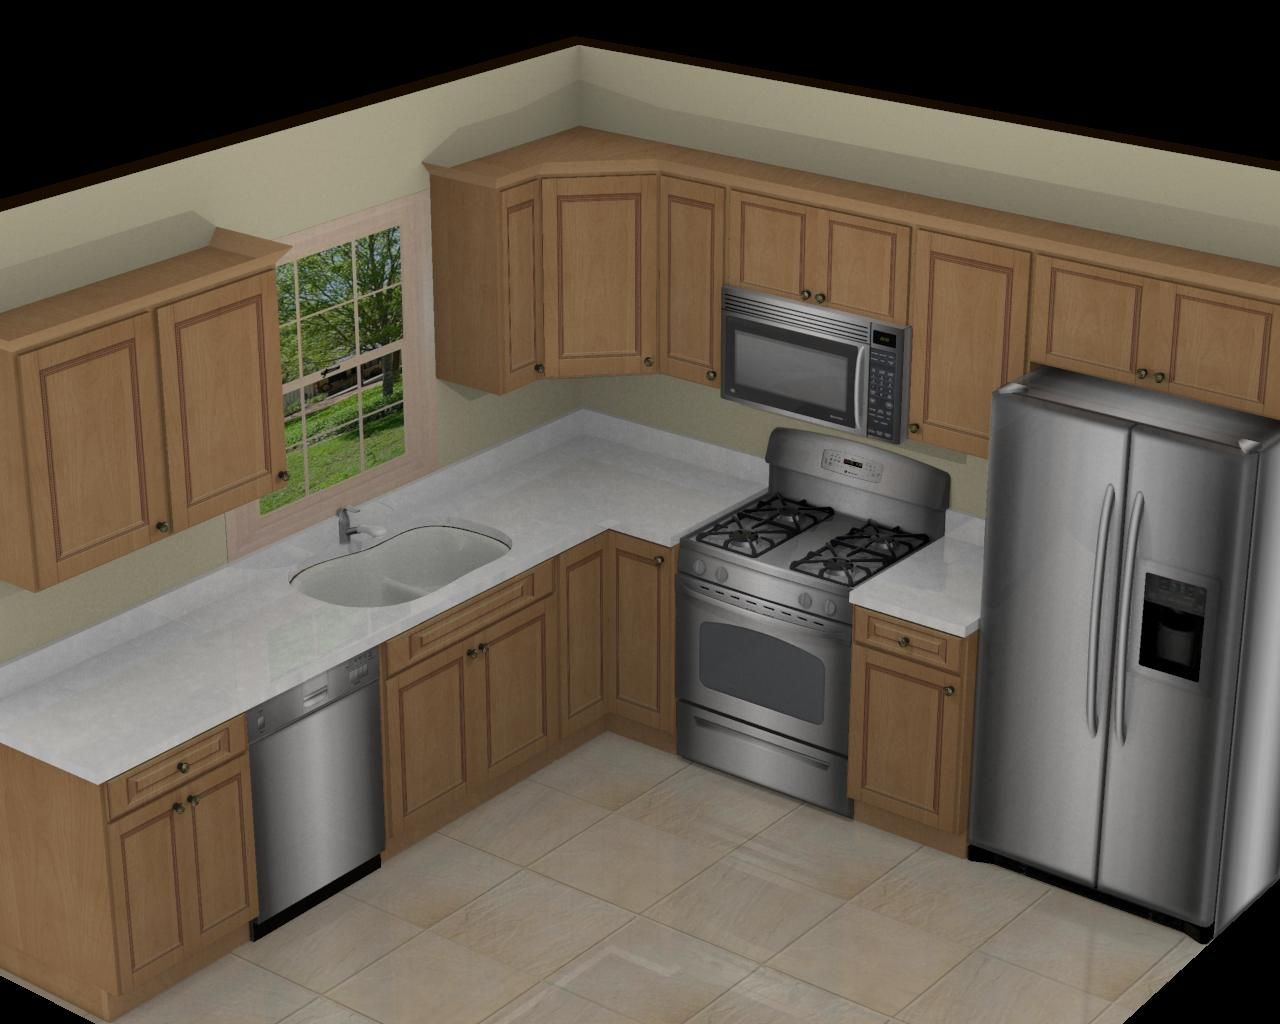 10x10 kitchen on pinterest l shaped kitchen kitchen for 7 x 9 kitchen cabinets